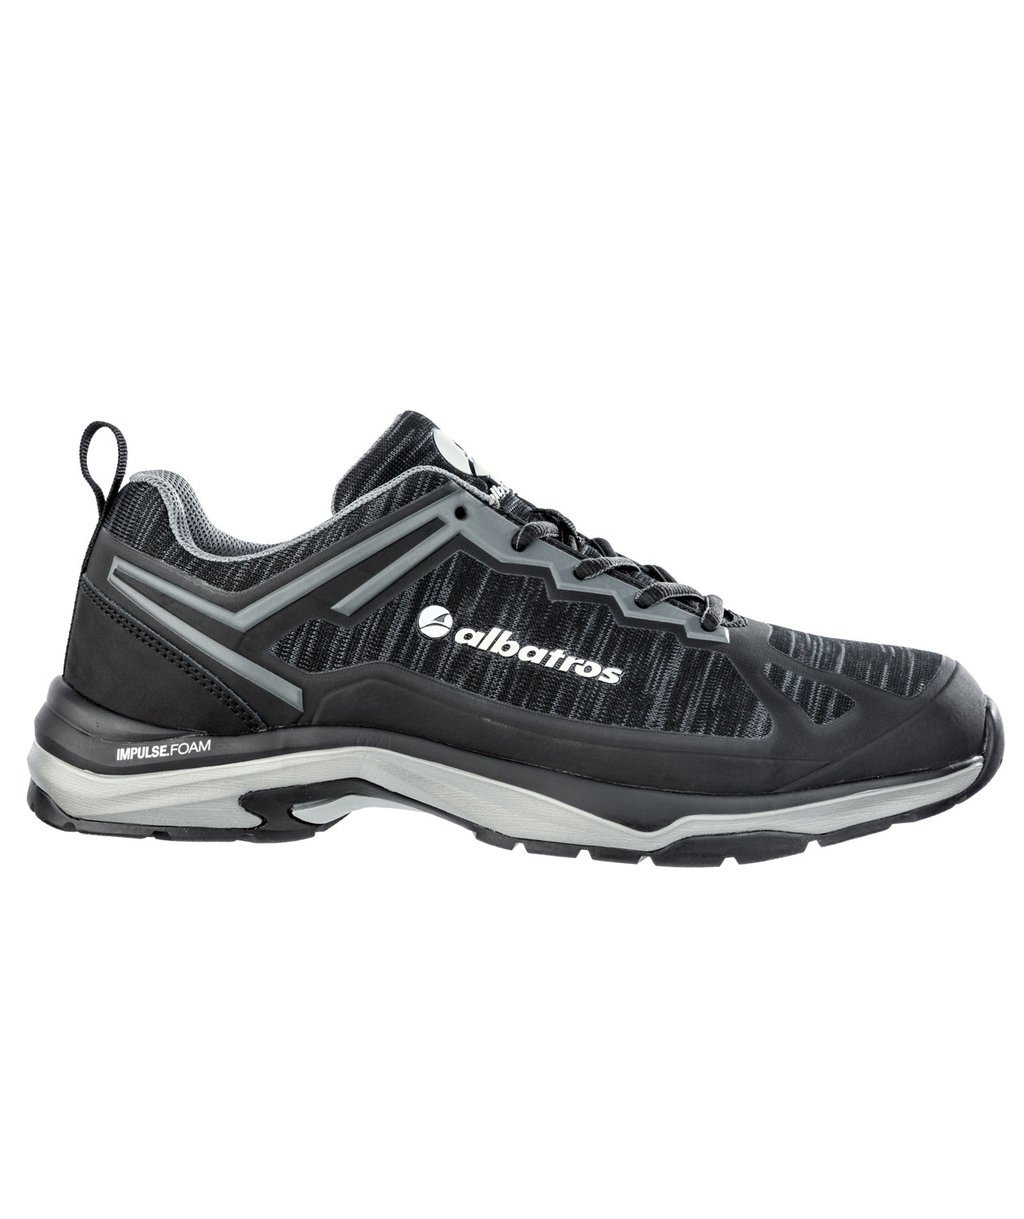 Albatros Skyrunner Black Low arbejdssko O1, Sort